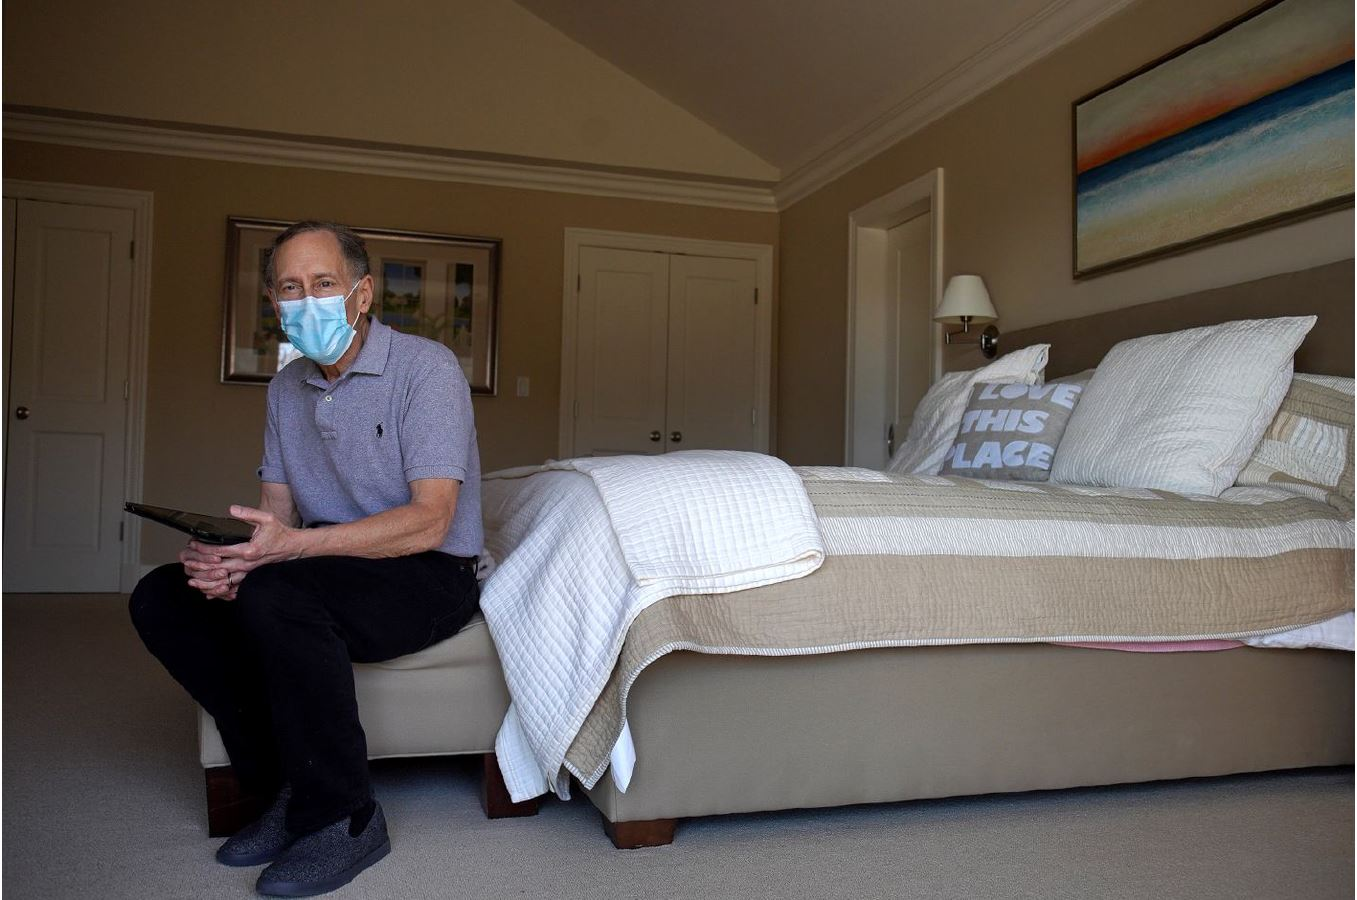 Robert Langer working on a bed at home while wearing a mask